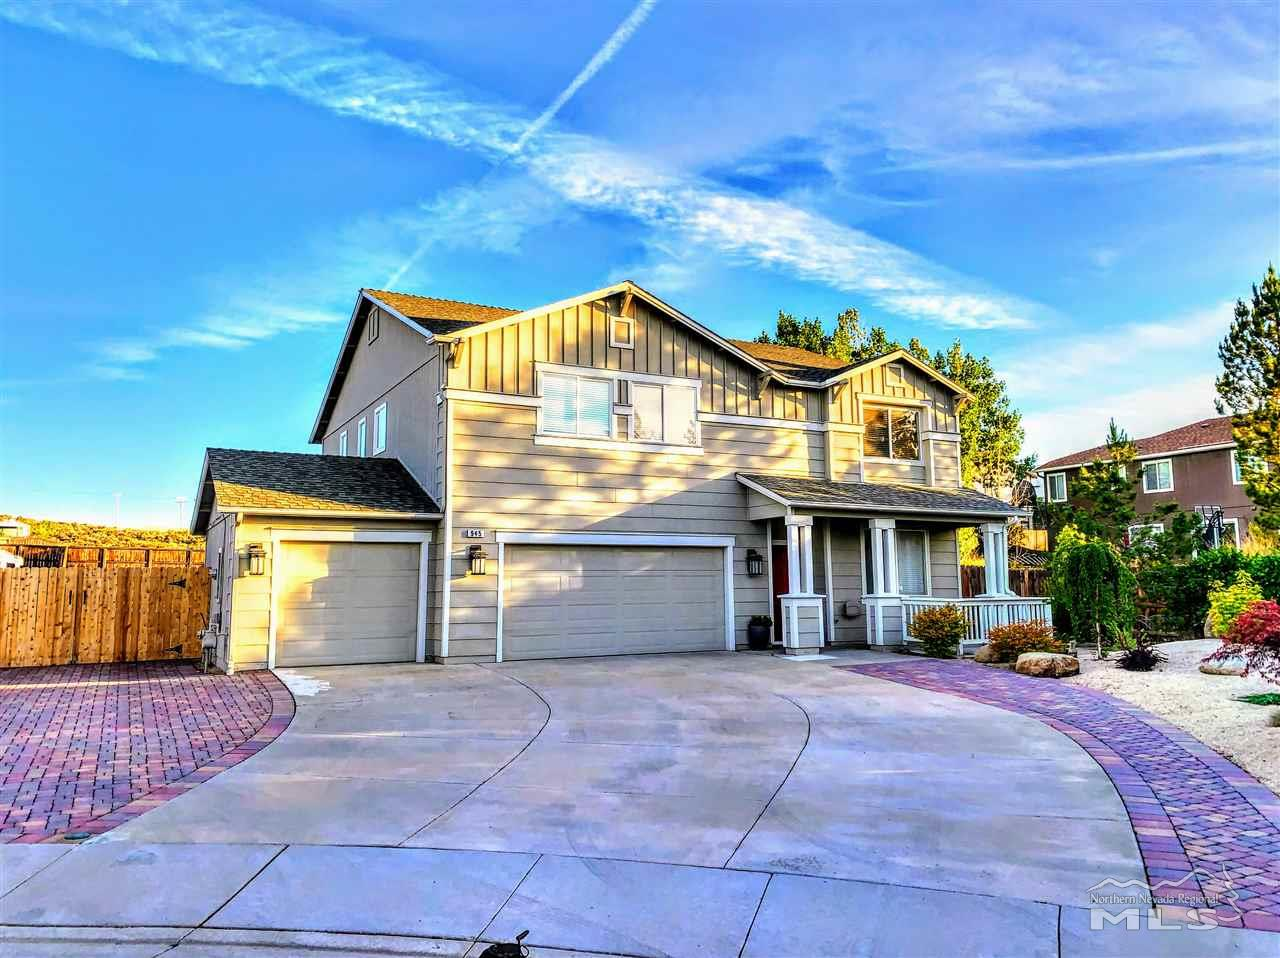 Image for 945 Golden West, Reno, NV 89506